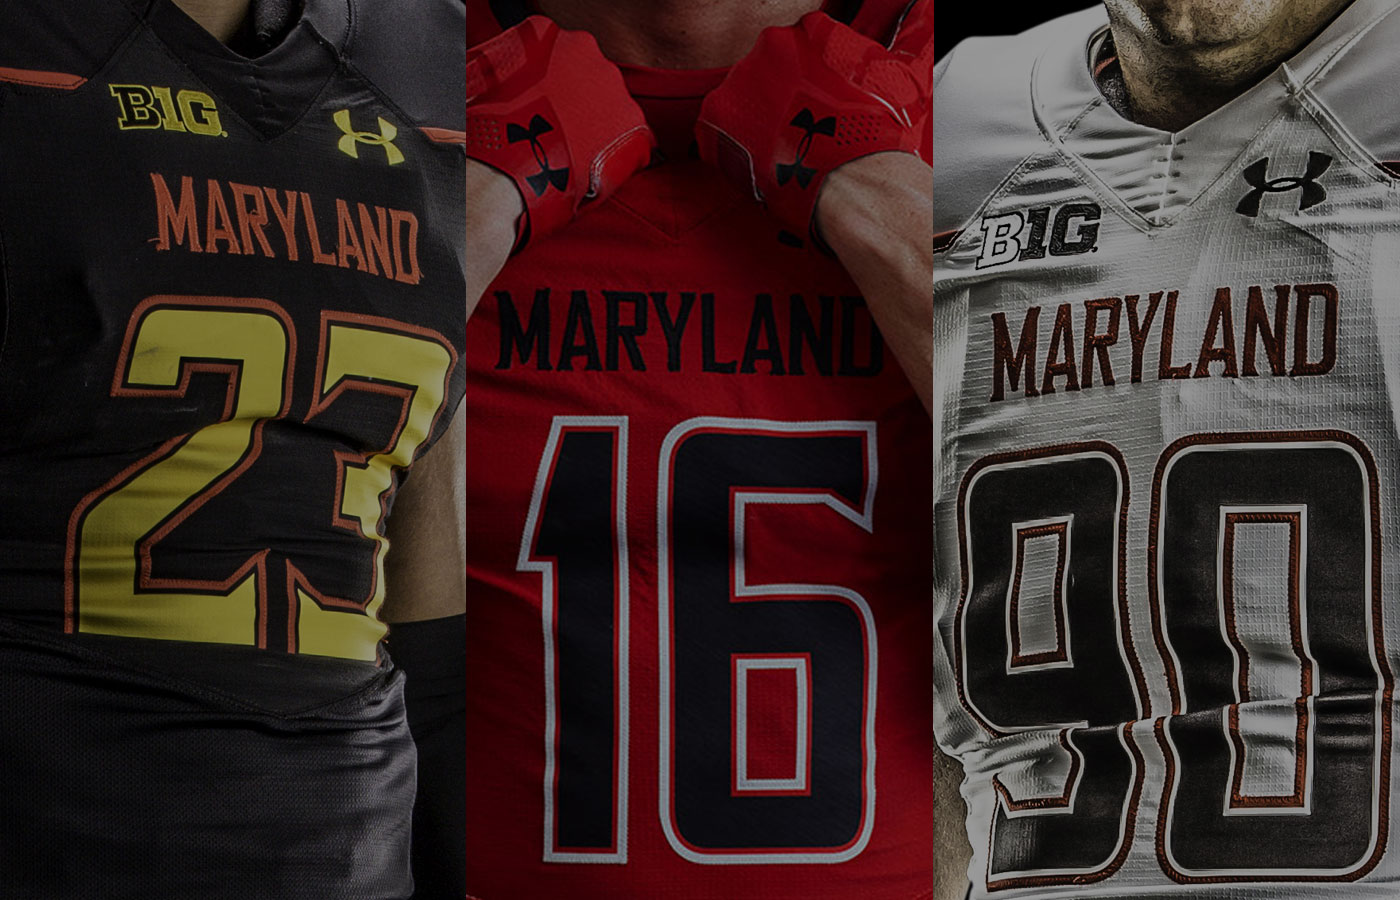 d3847131a5a SPECIAL OPS  Under Armour and Maryland have teamed up to produce some of  the most